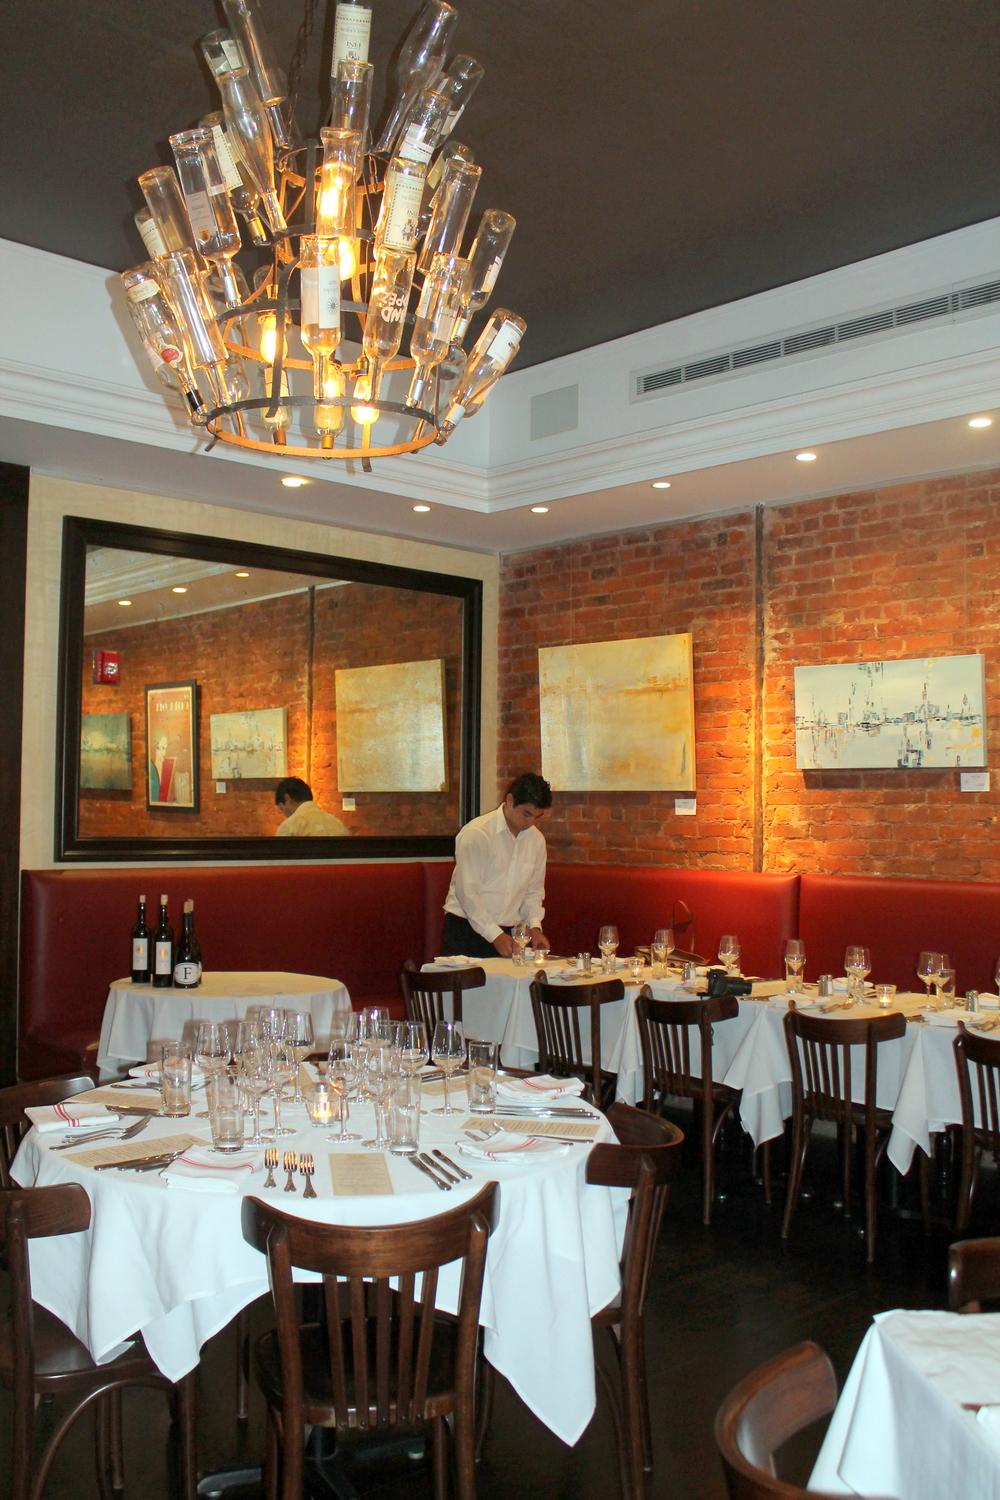 Bistro Versailles, Greenwich, CT, Image property of Jessica Gordon Ryan